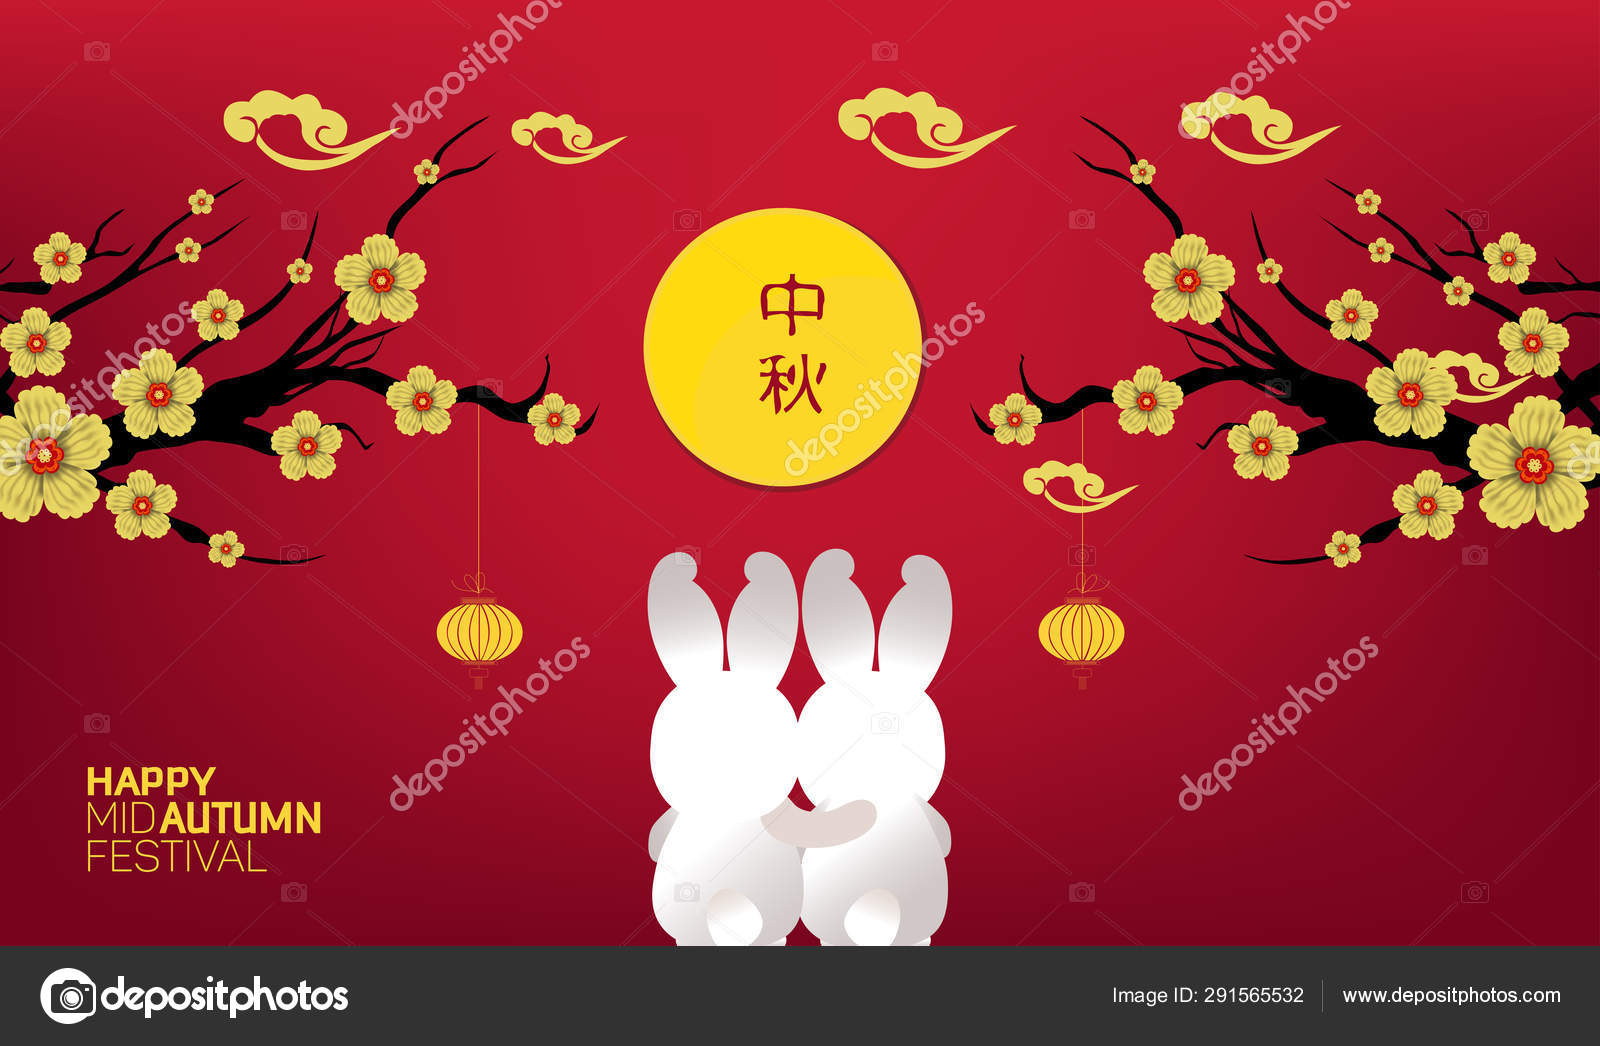 Chinese Moon Festival 2020.Mid Autumn Lantern Festival Background Chinese New Year 2020